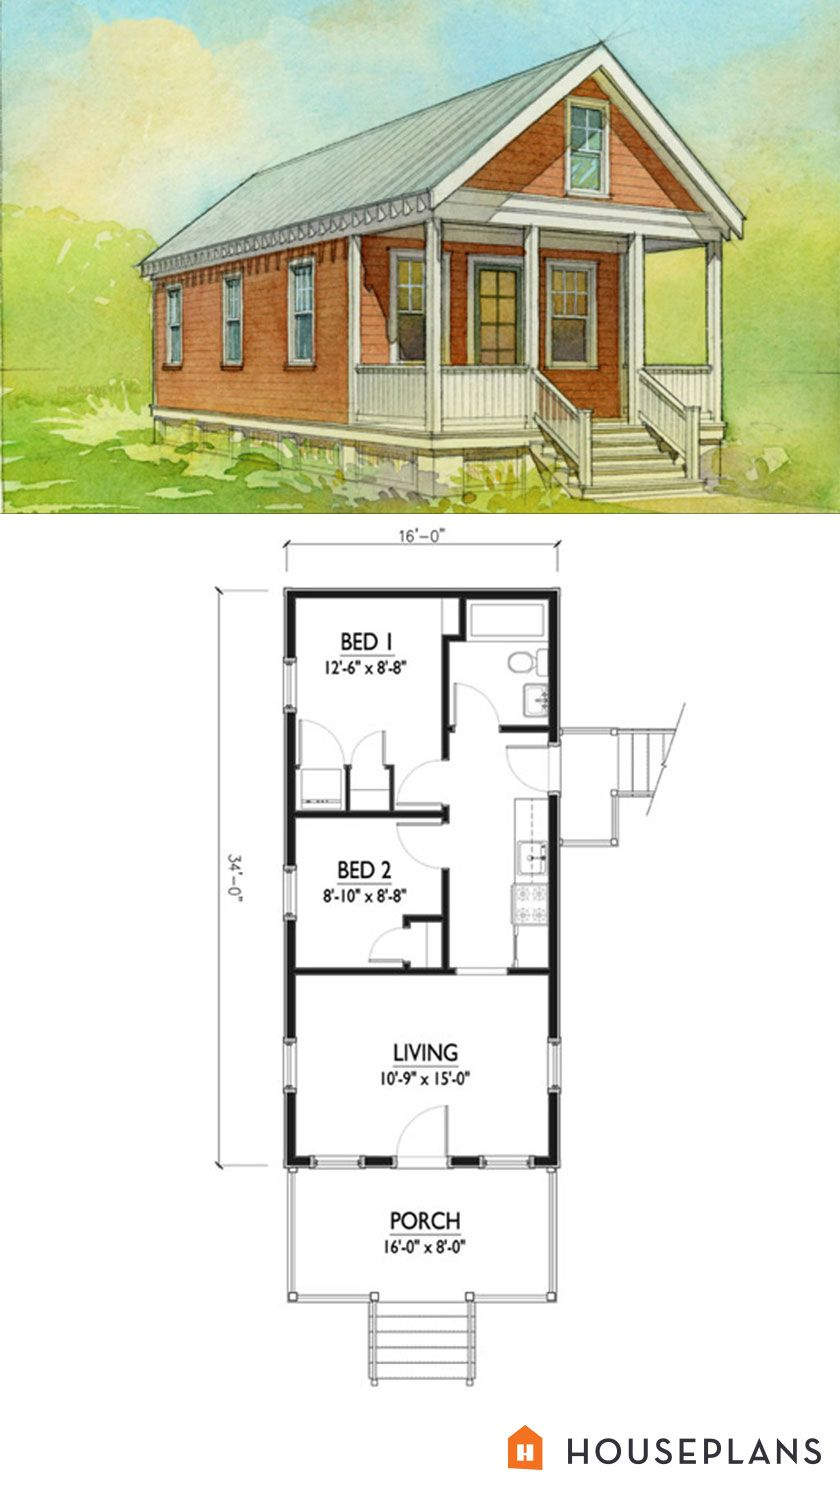 Small katrina cottage house plan 500sft 2br 1 bath by for Little house blueprints